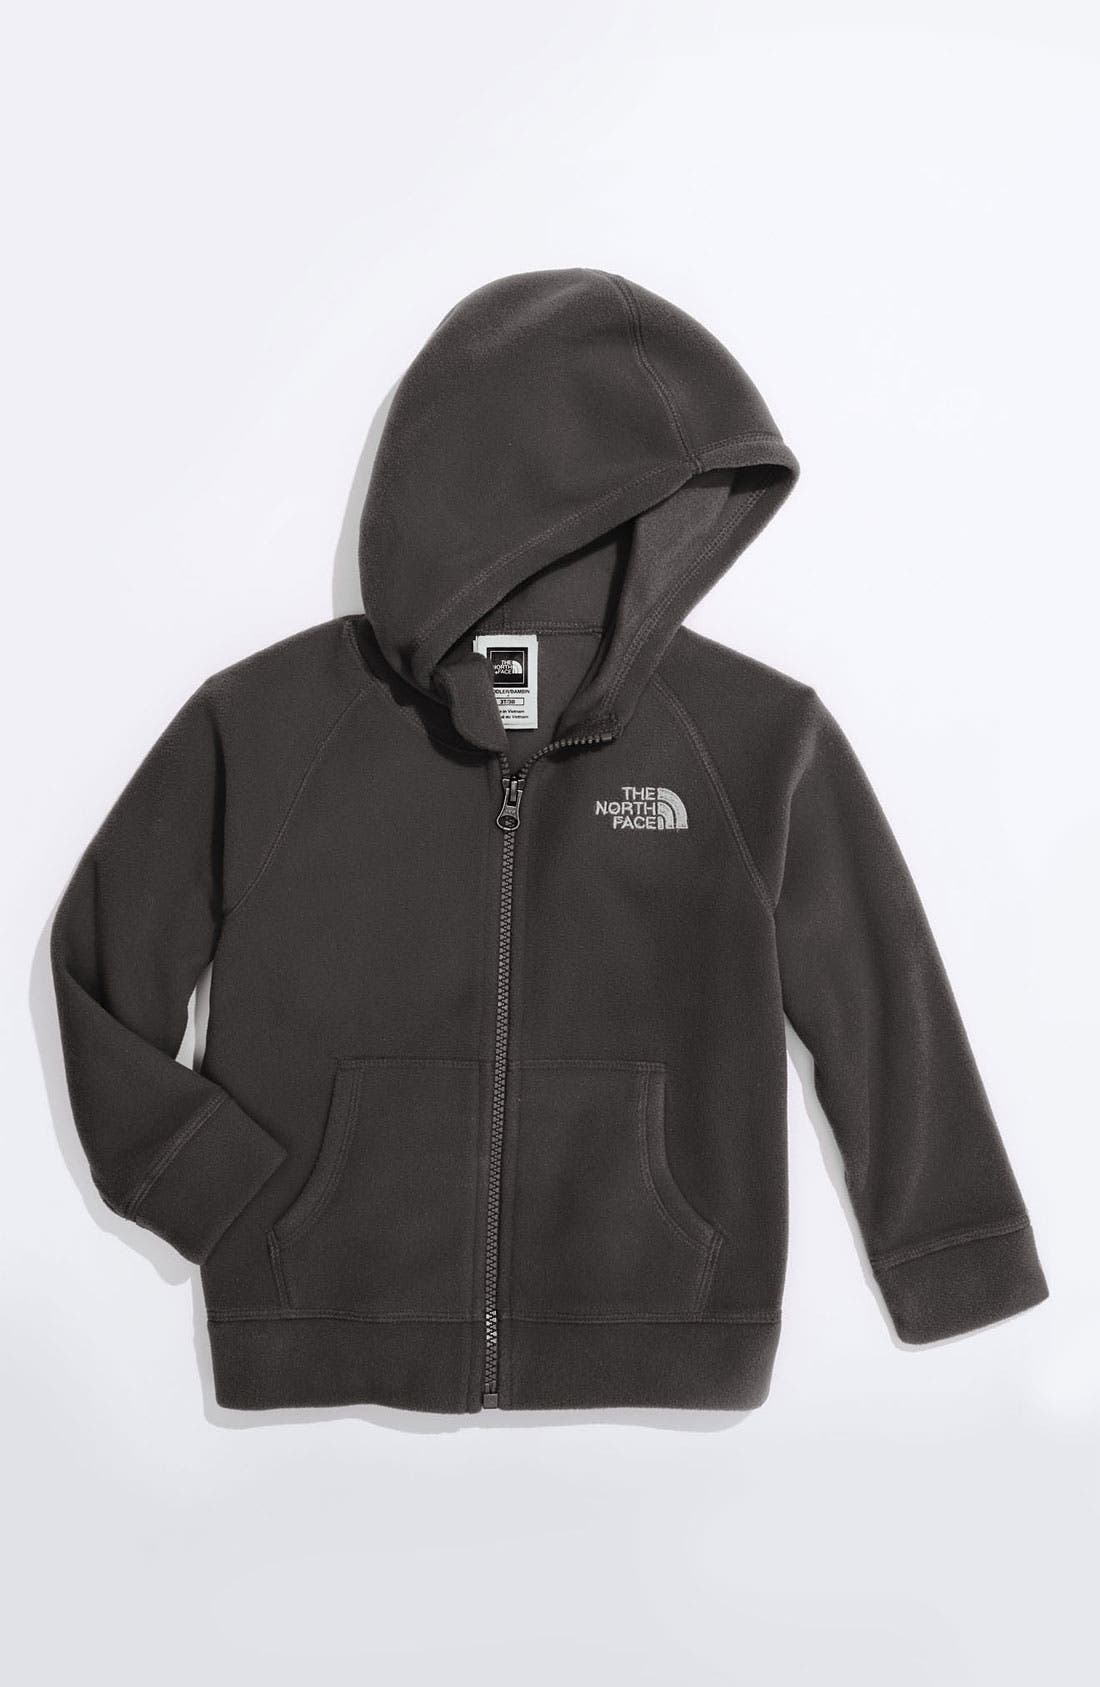 Alternate Image 1 Selected - The North Face 'Glacier' Fleece Jacket (Toddler)